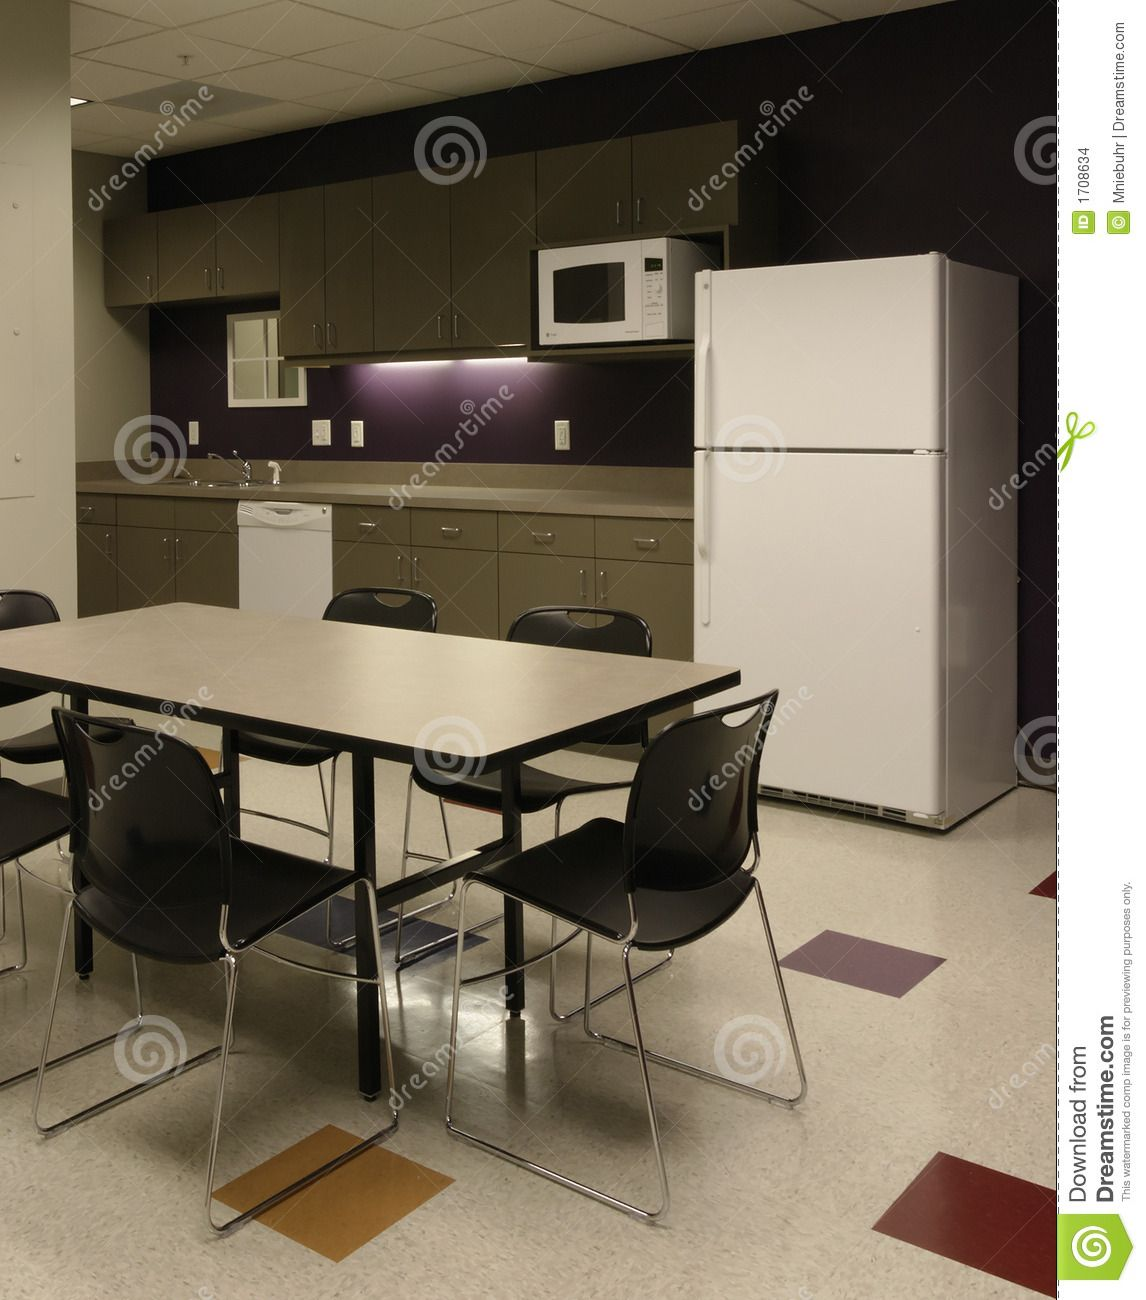 Office Kitchen Tables: Image Result For Employee Break Room Kitchen